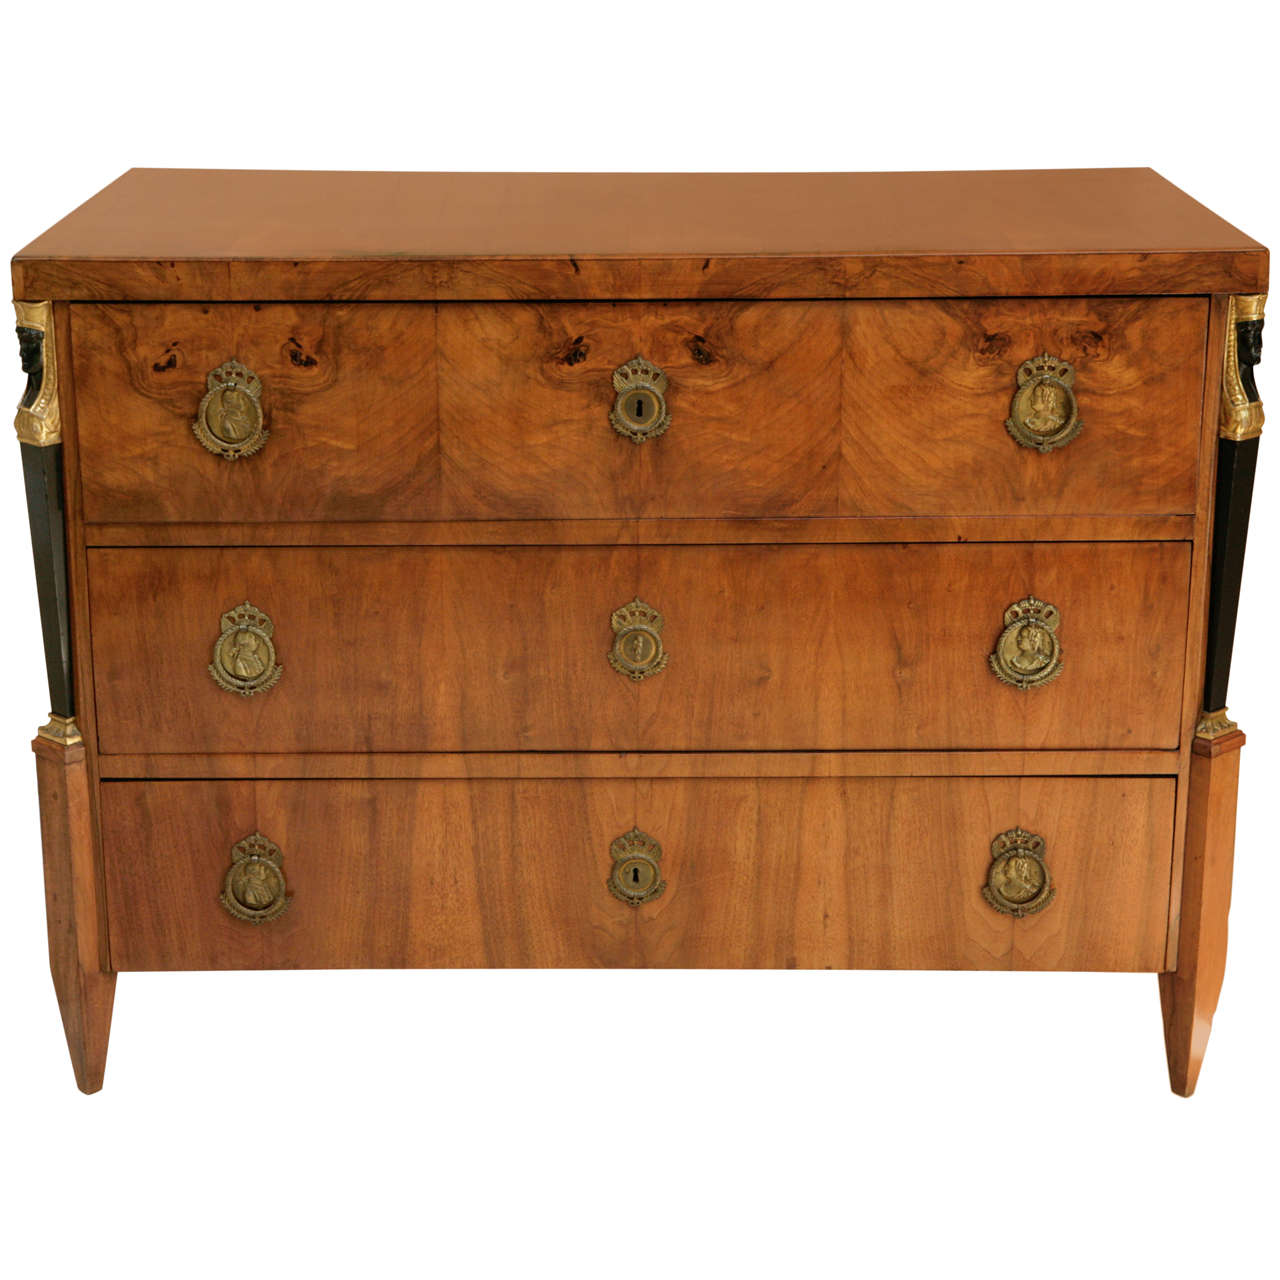 19th Century Italian Walnut Commode with Three Drawers